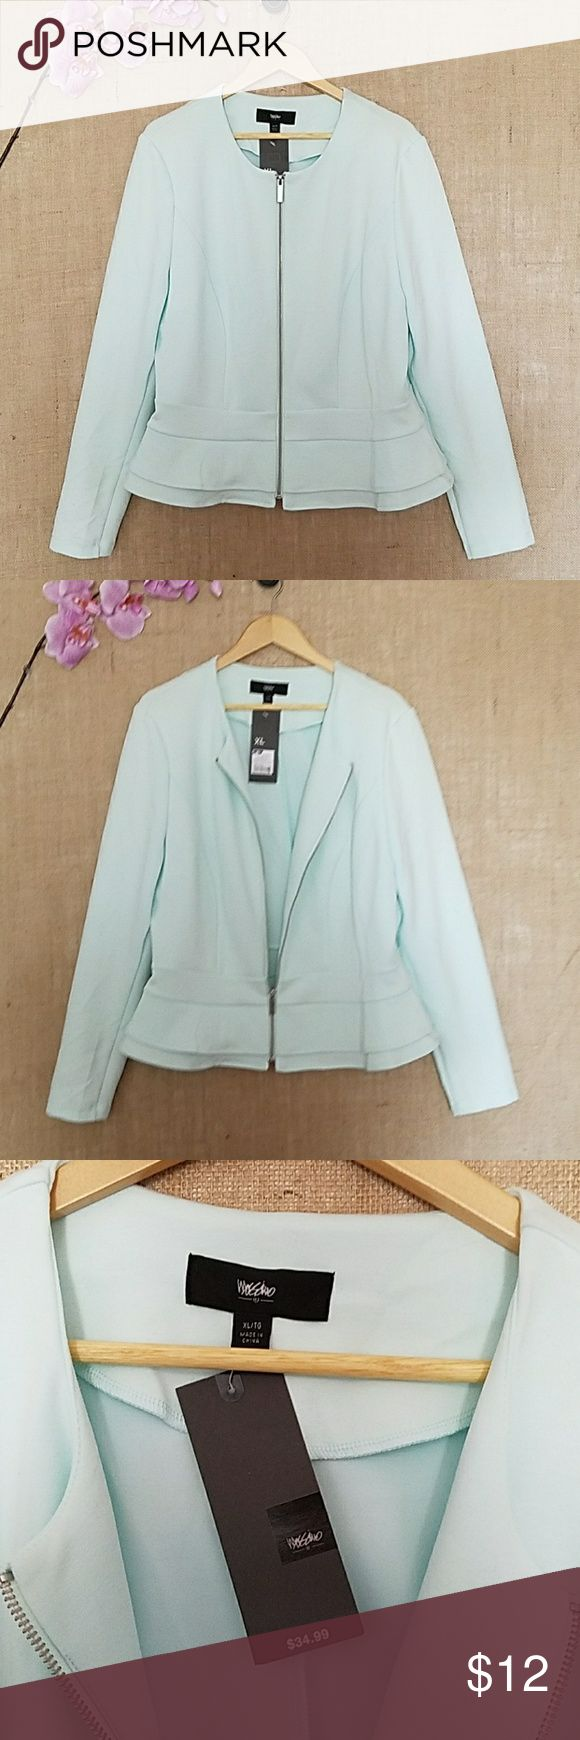 Light Blue Waste Length Jacket NWT This is an adorable and soft light blue jacket.  It zips in the front and is ruffled at the waste.  Great look with jeans or a skirt. Wear with a cute top and keep it unzipped. Mossimo Supply Co Jackets & Coats Blazers